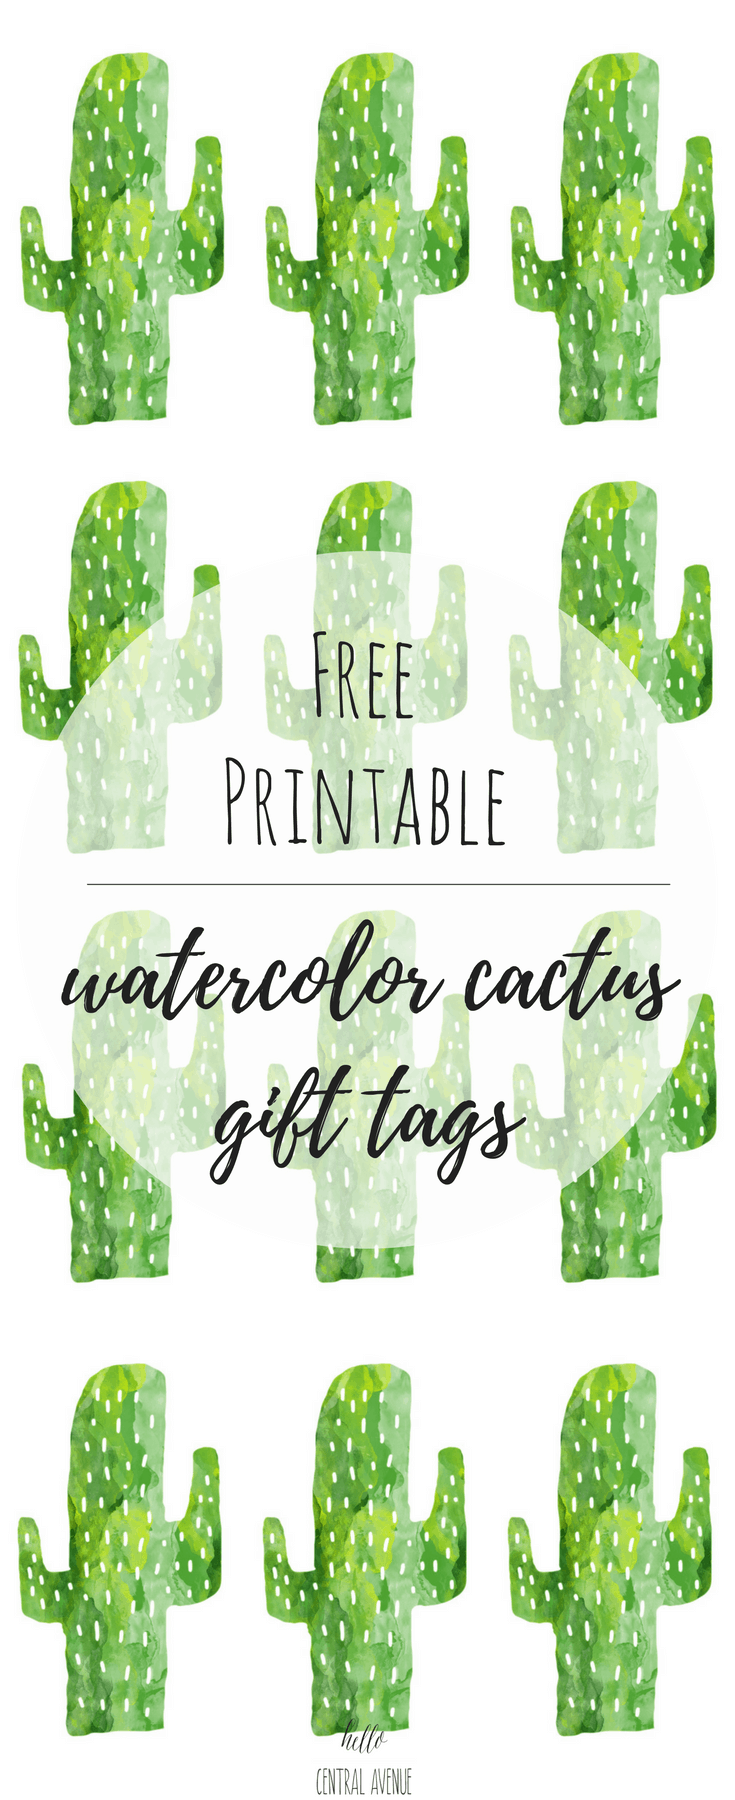 Free watercolor cacti gift tags